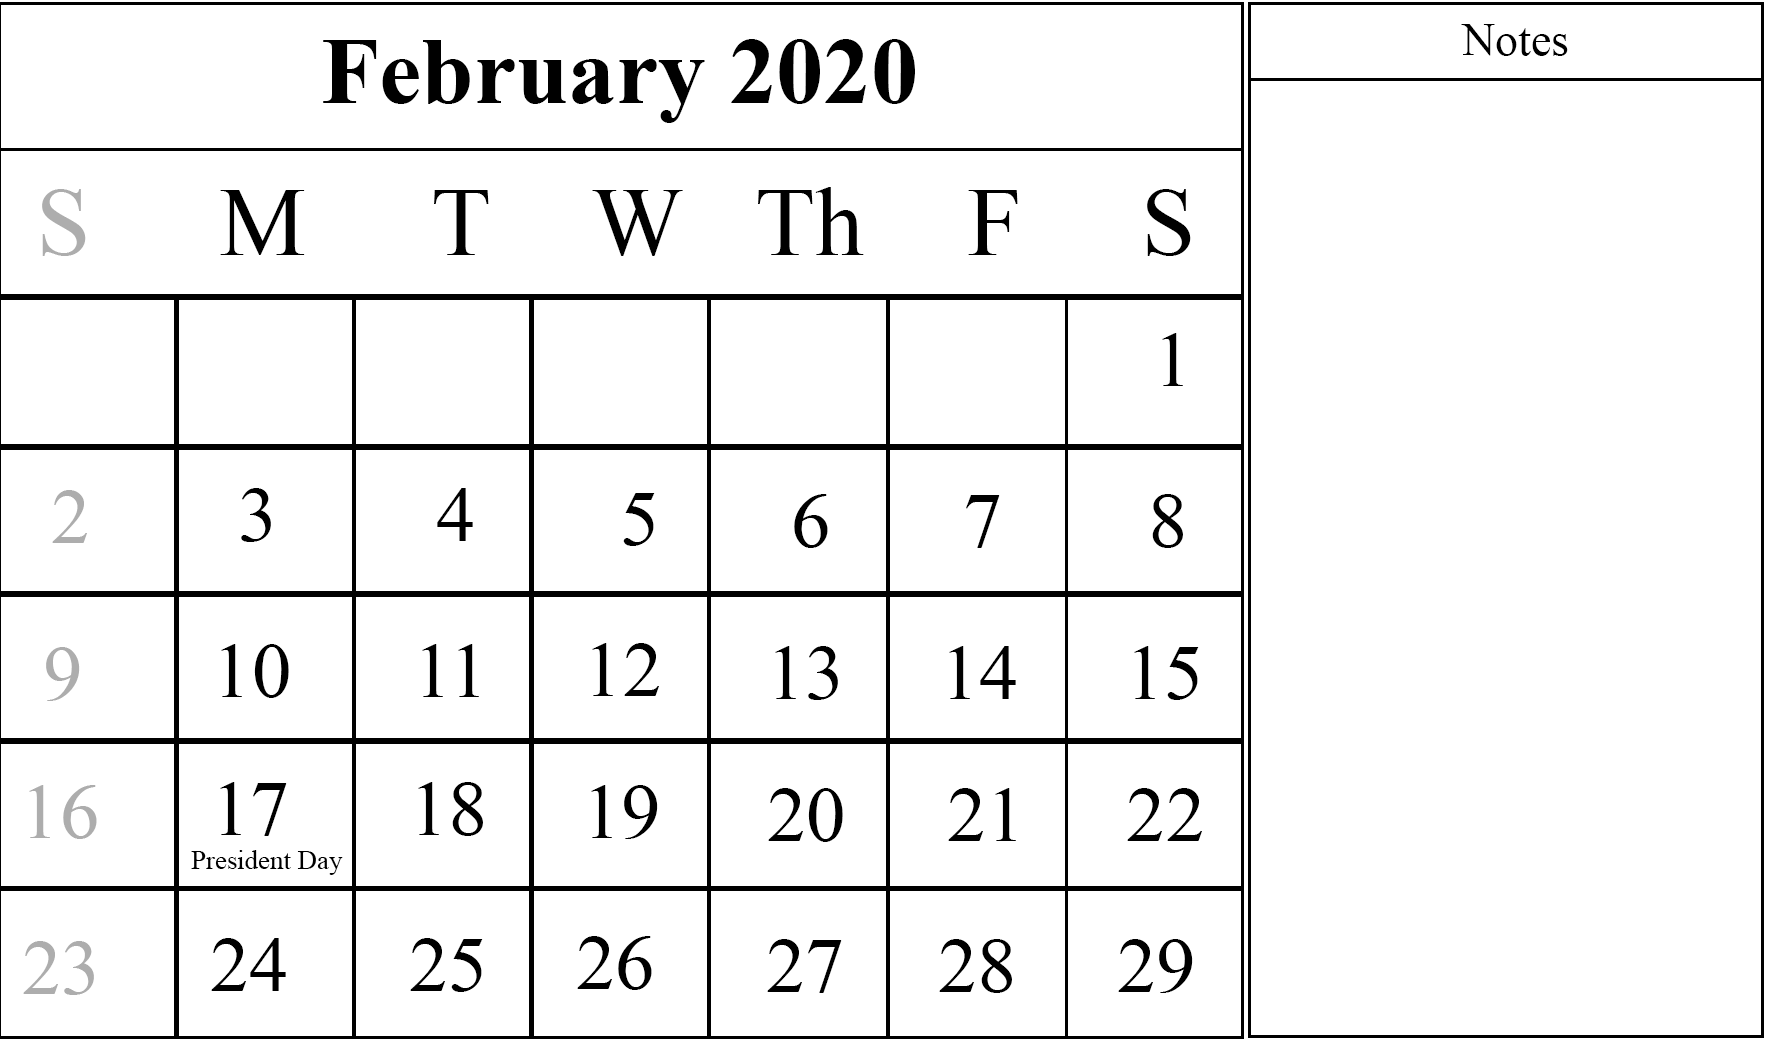 Feb 2020 Calendar with Notes